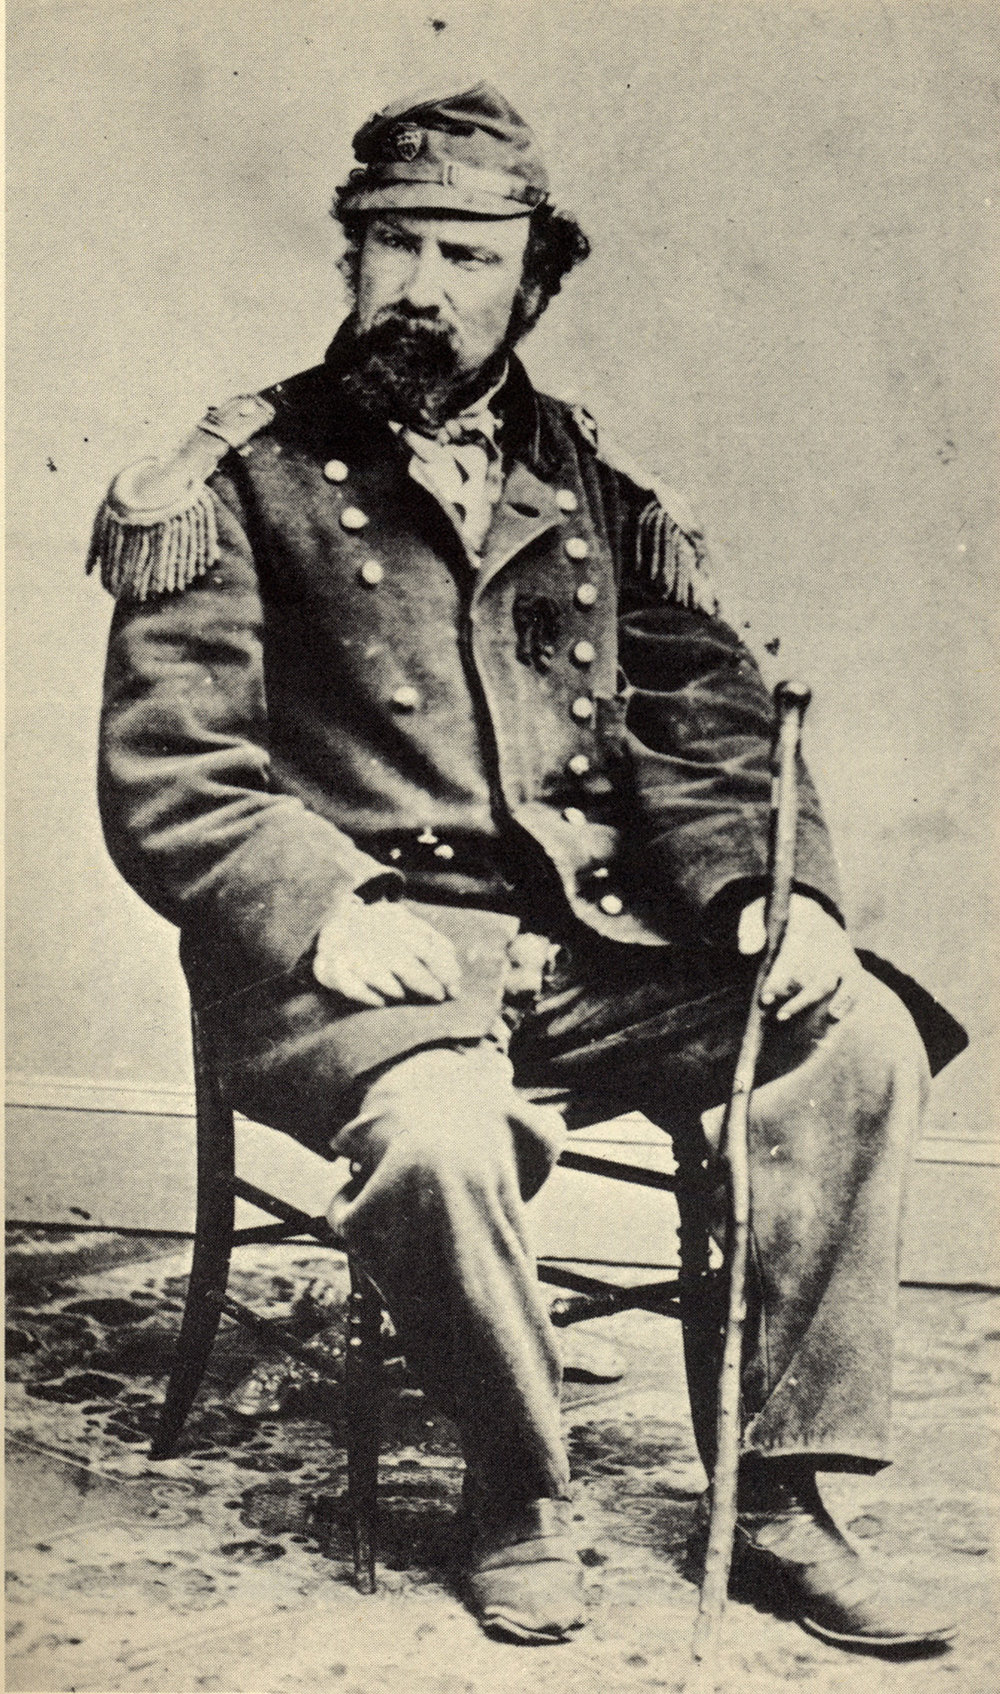 Emperor Norton , 1864.  By the Bradley & Rulofson studio. Collection of the Bancroft Library, University of California Berkeley.